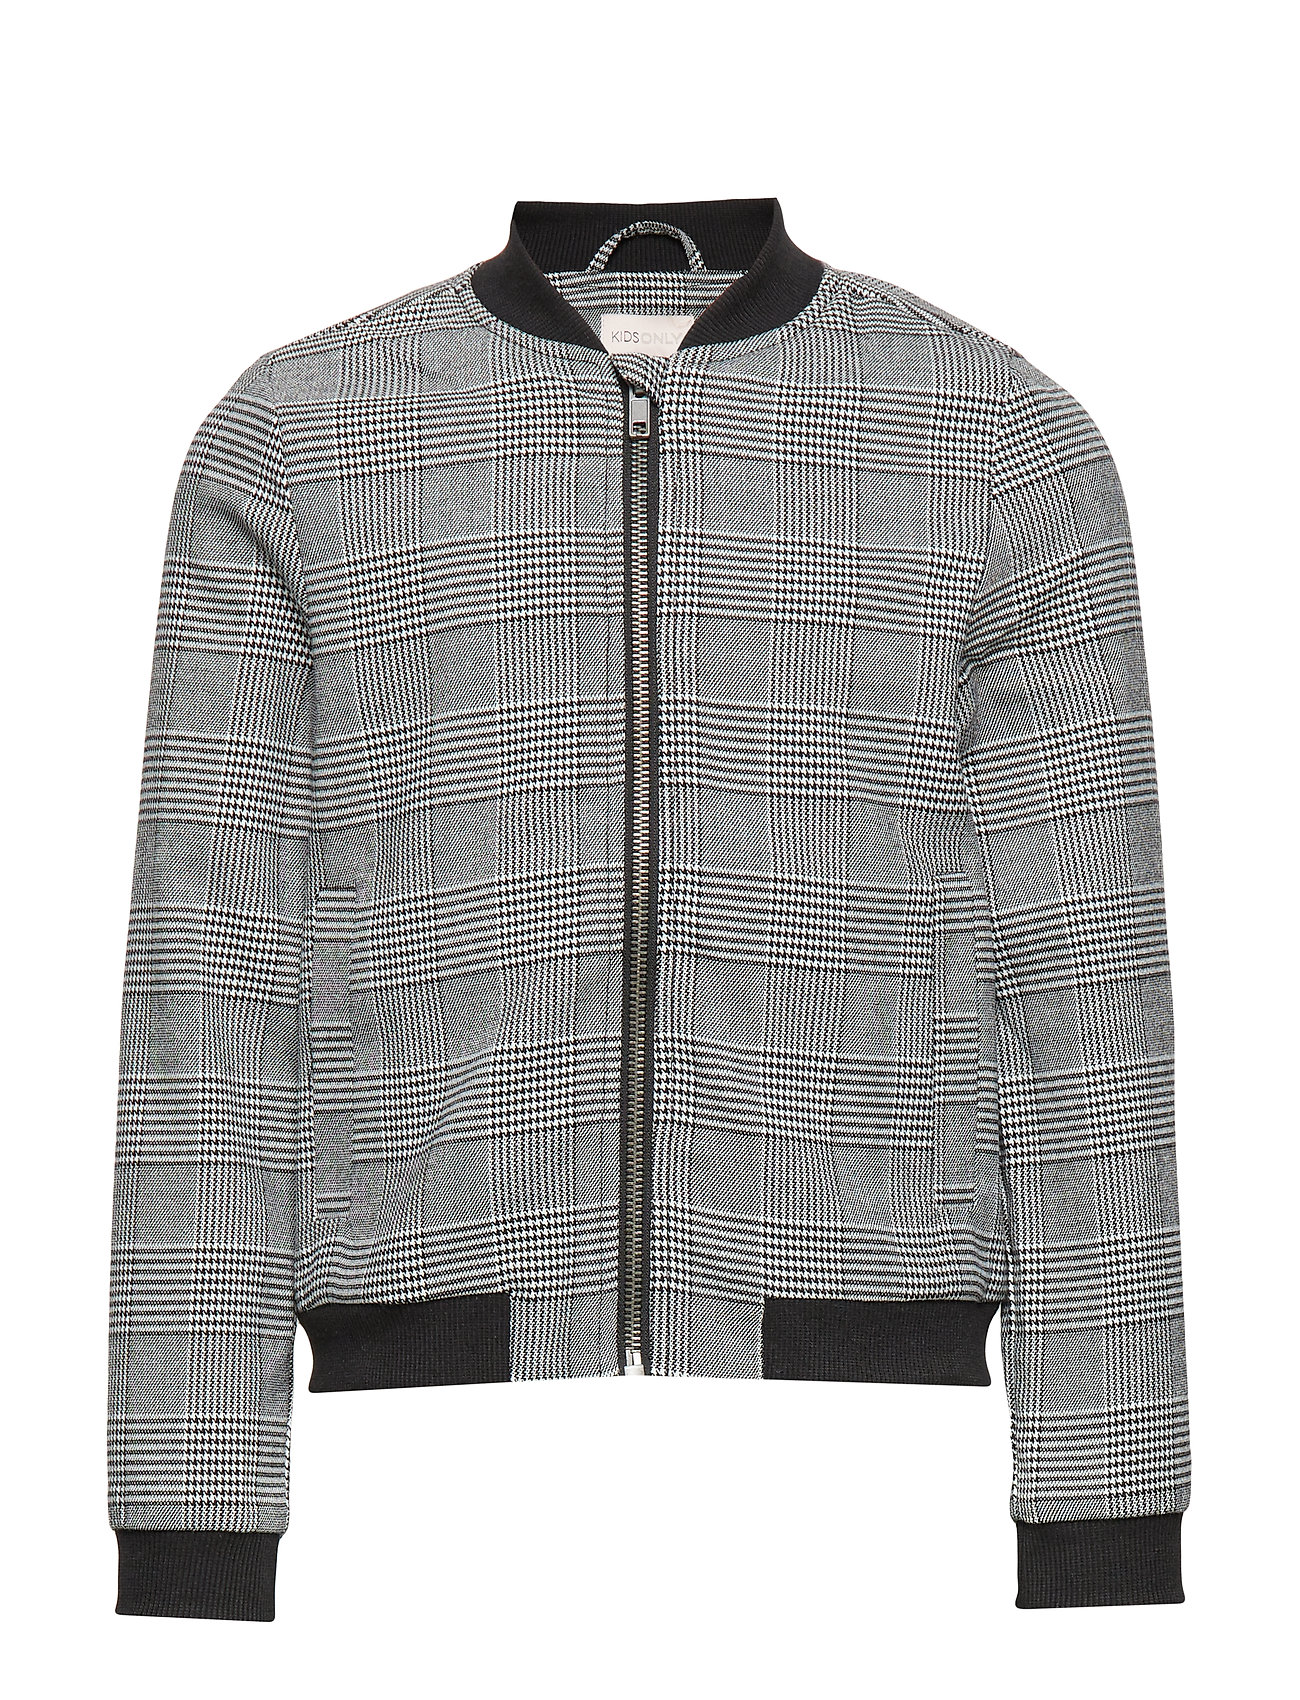 Kids Only KONPOPTRASH SOFT CHECK BOMBER JACKET - MEDIUM GREY MELANGE